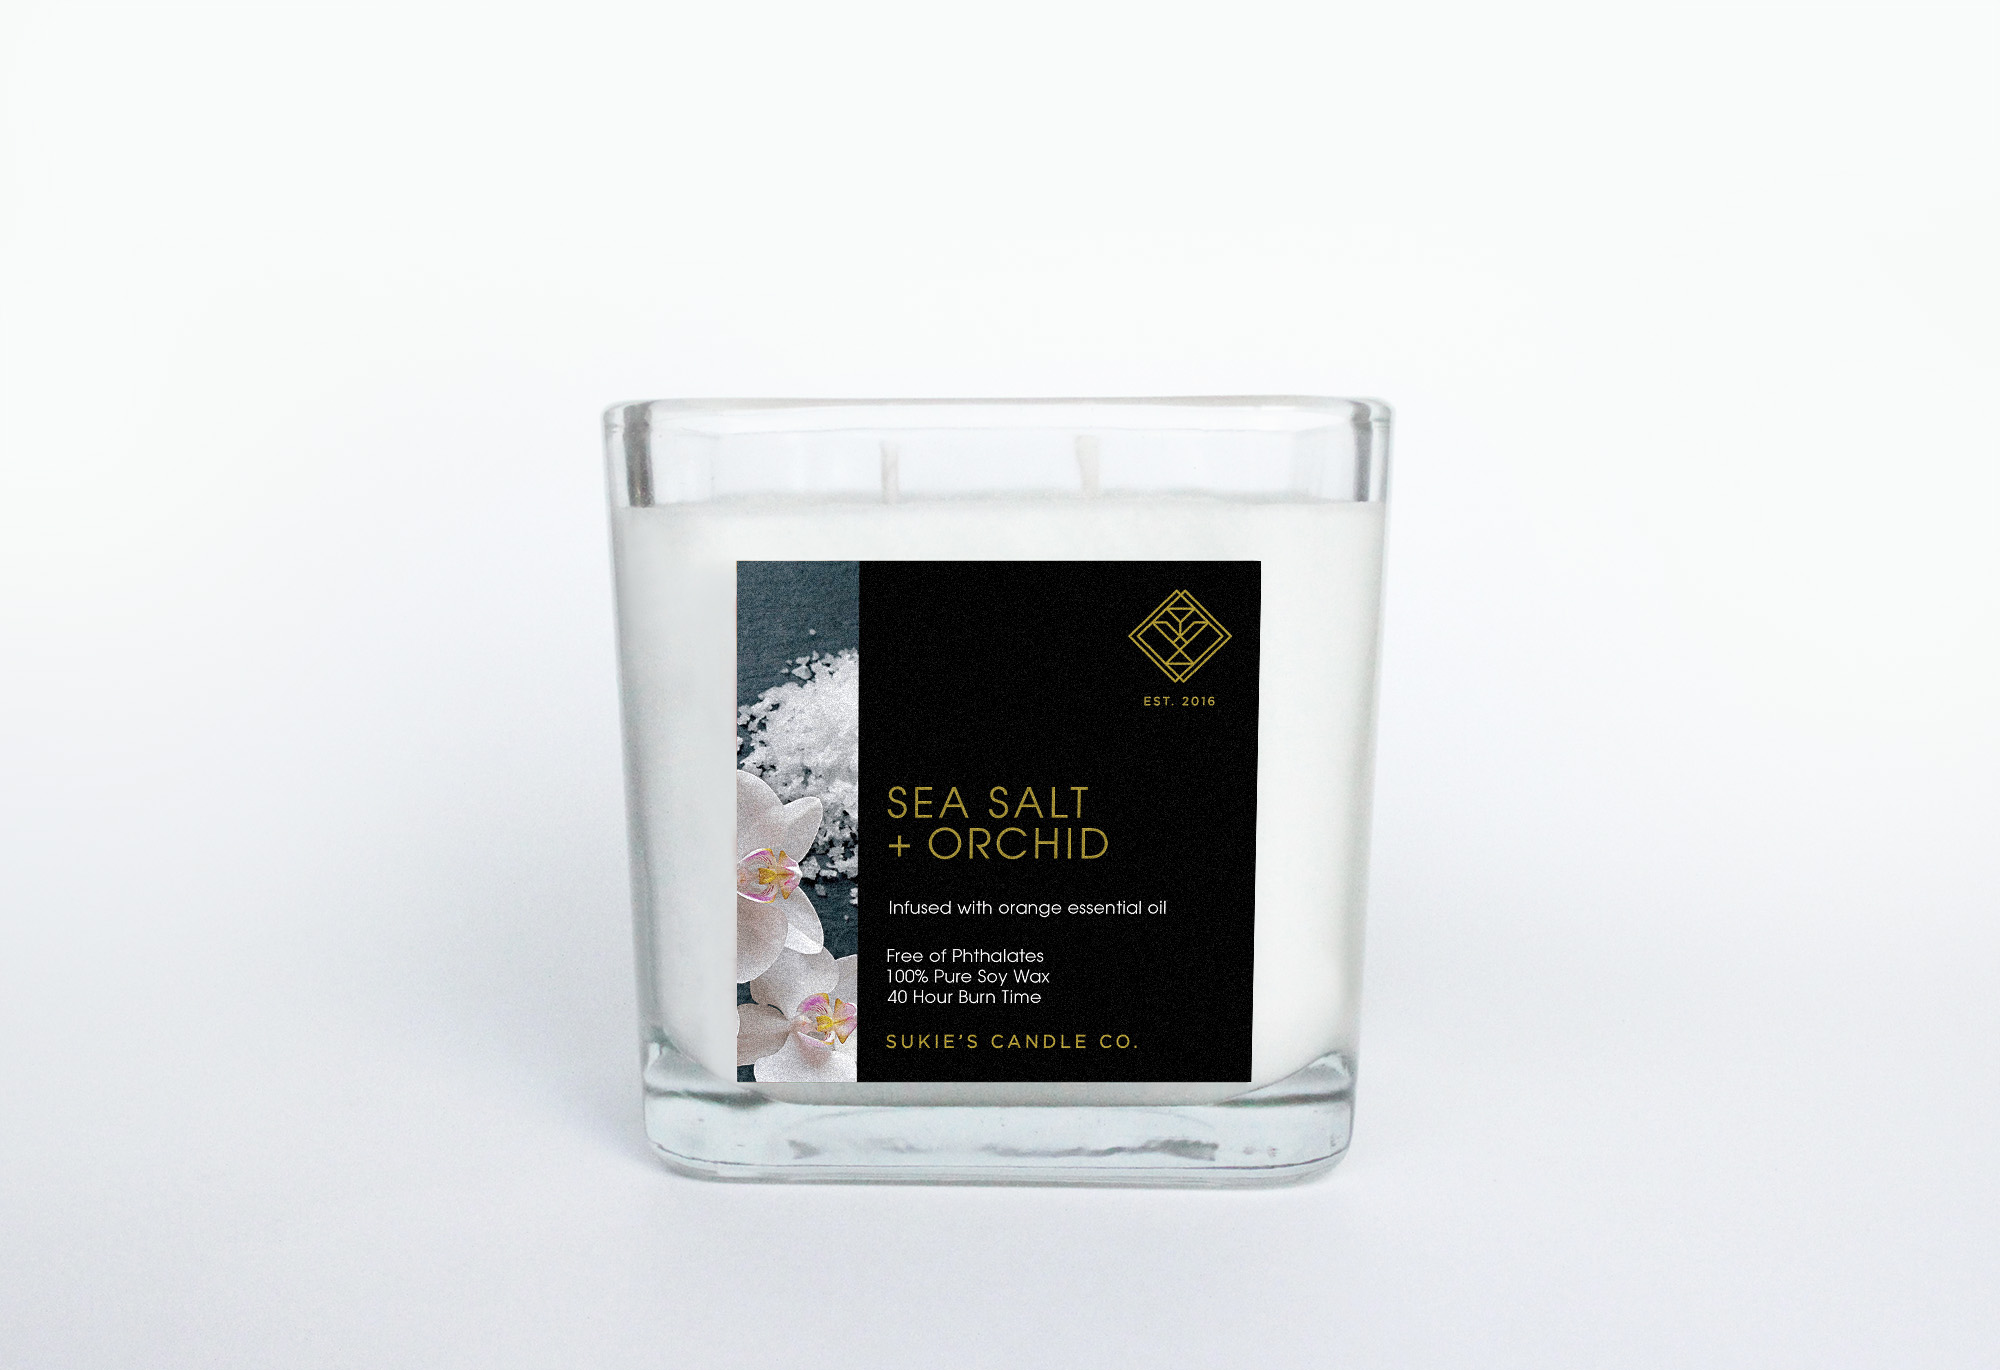 Sukies_Candle_Co_SeaSaltOrchid_Product.jpg